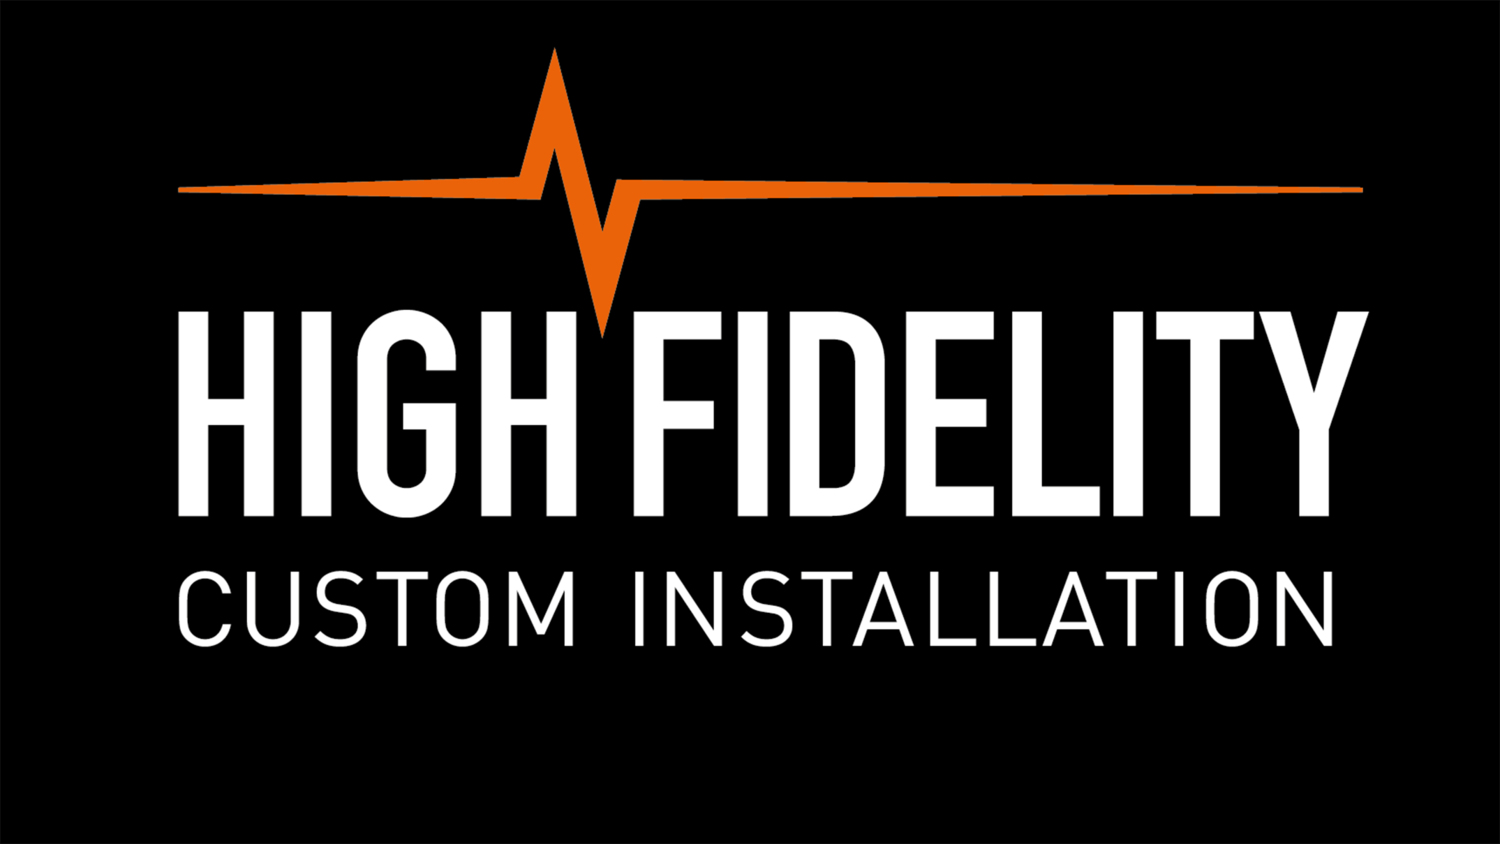 High Fidelity Custom